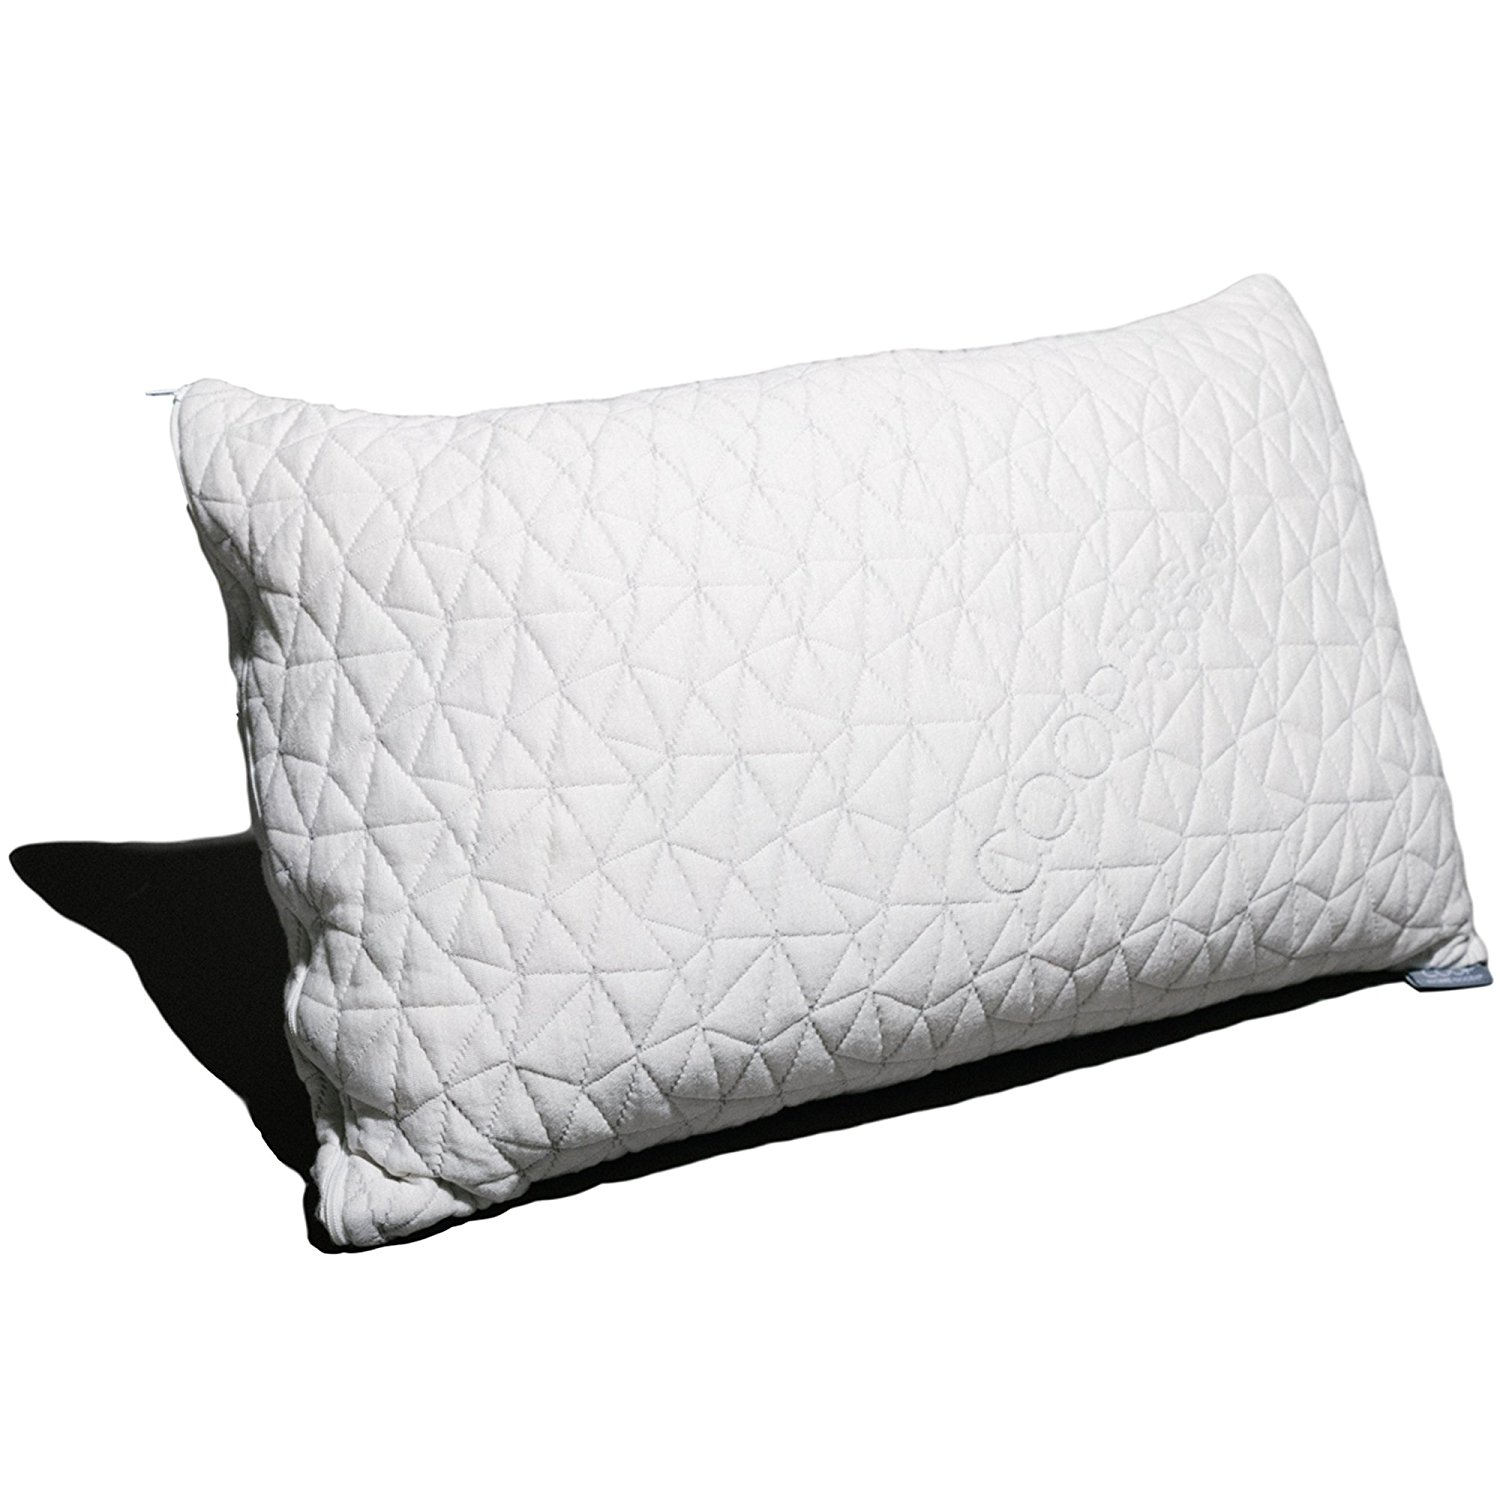 Coop Home Goods Best Pillow Review by www.snoremagazine.com